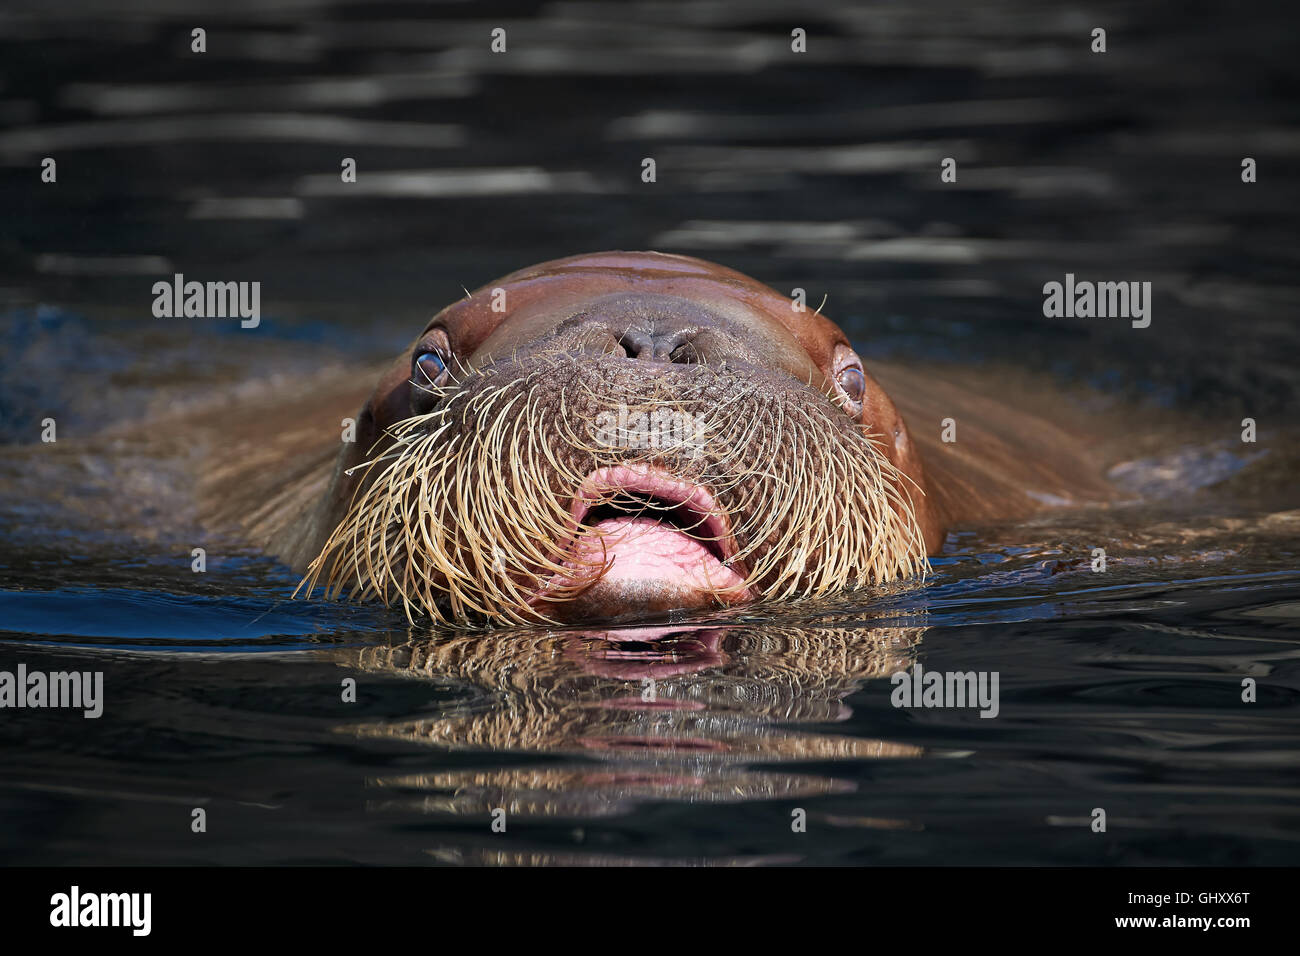 Pacific Walrus seen from the front swimming with its head over the water - Stock Image